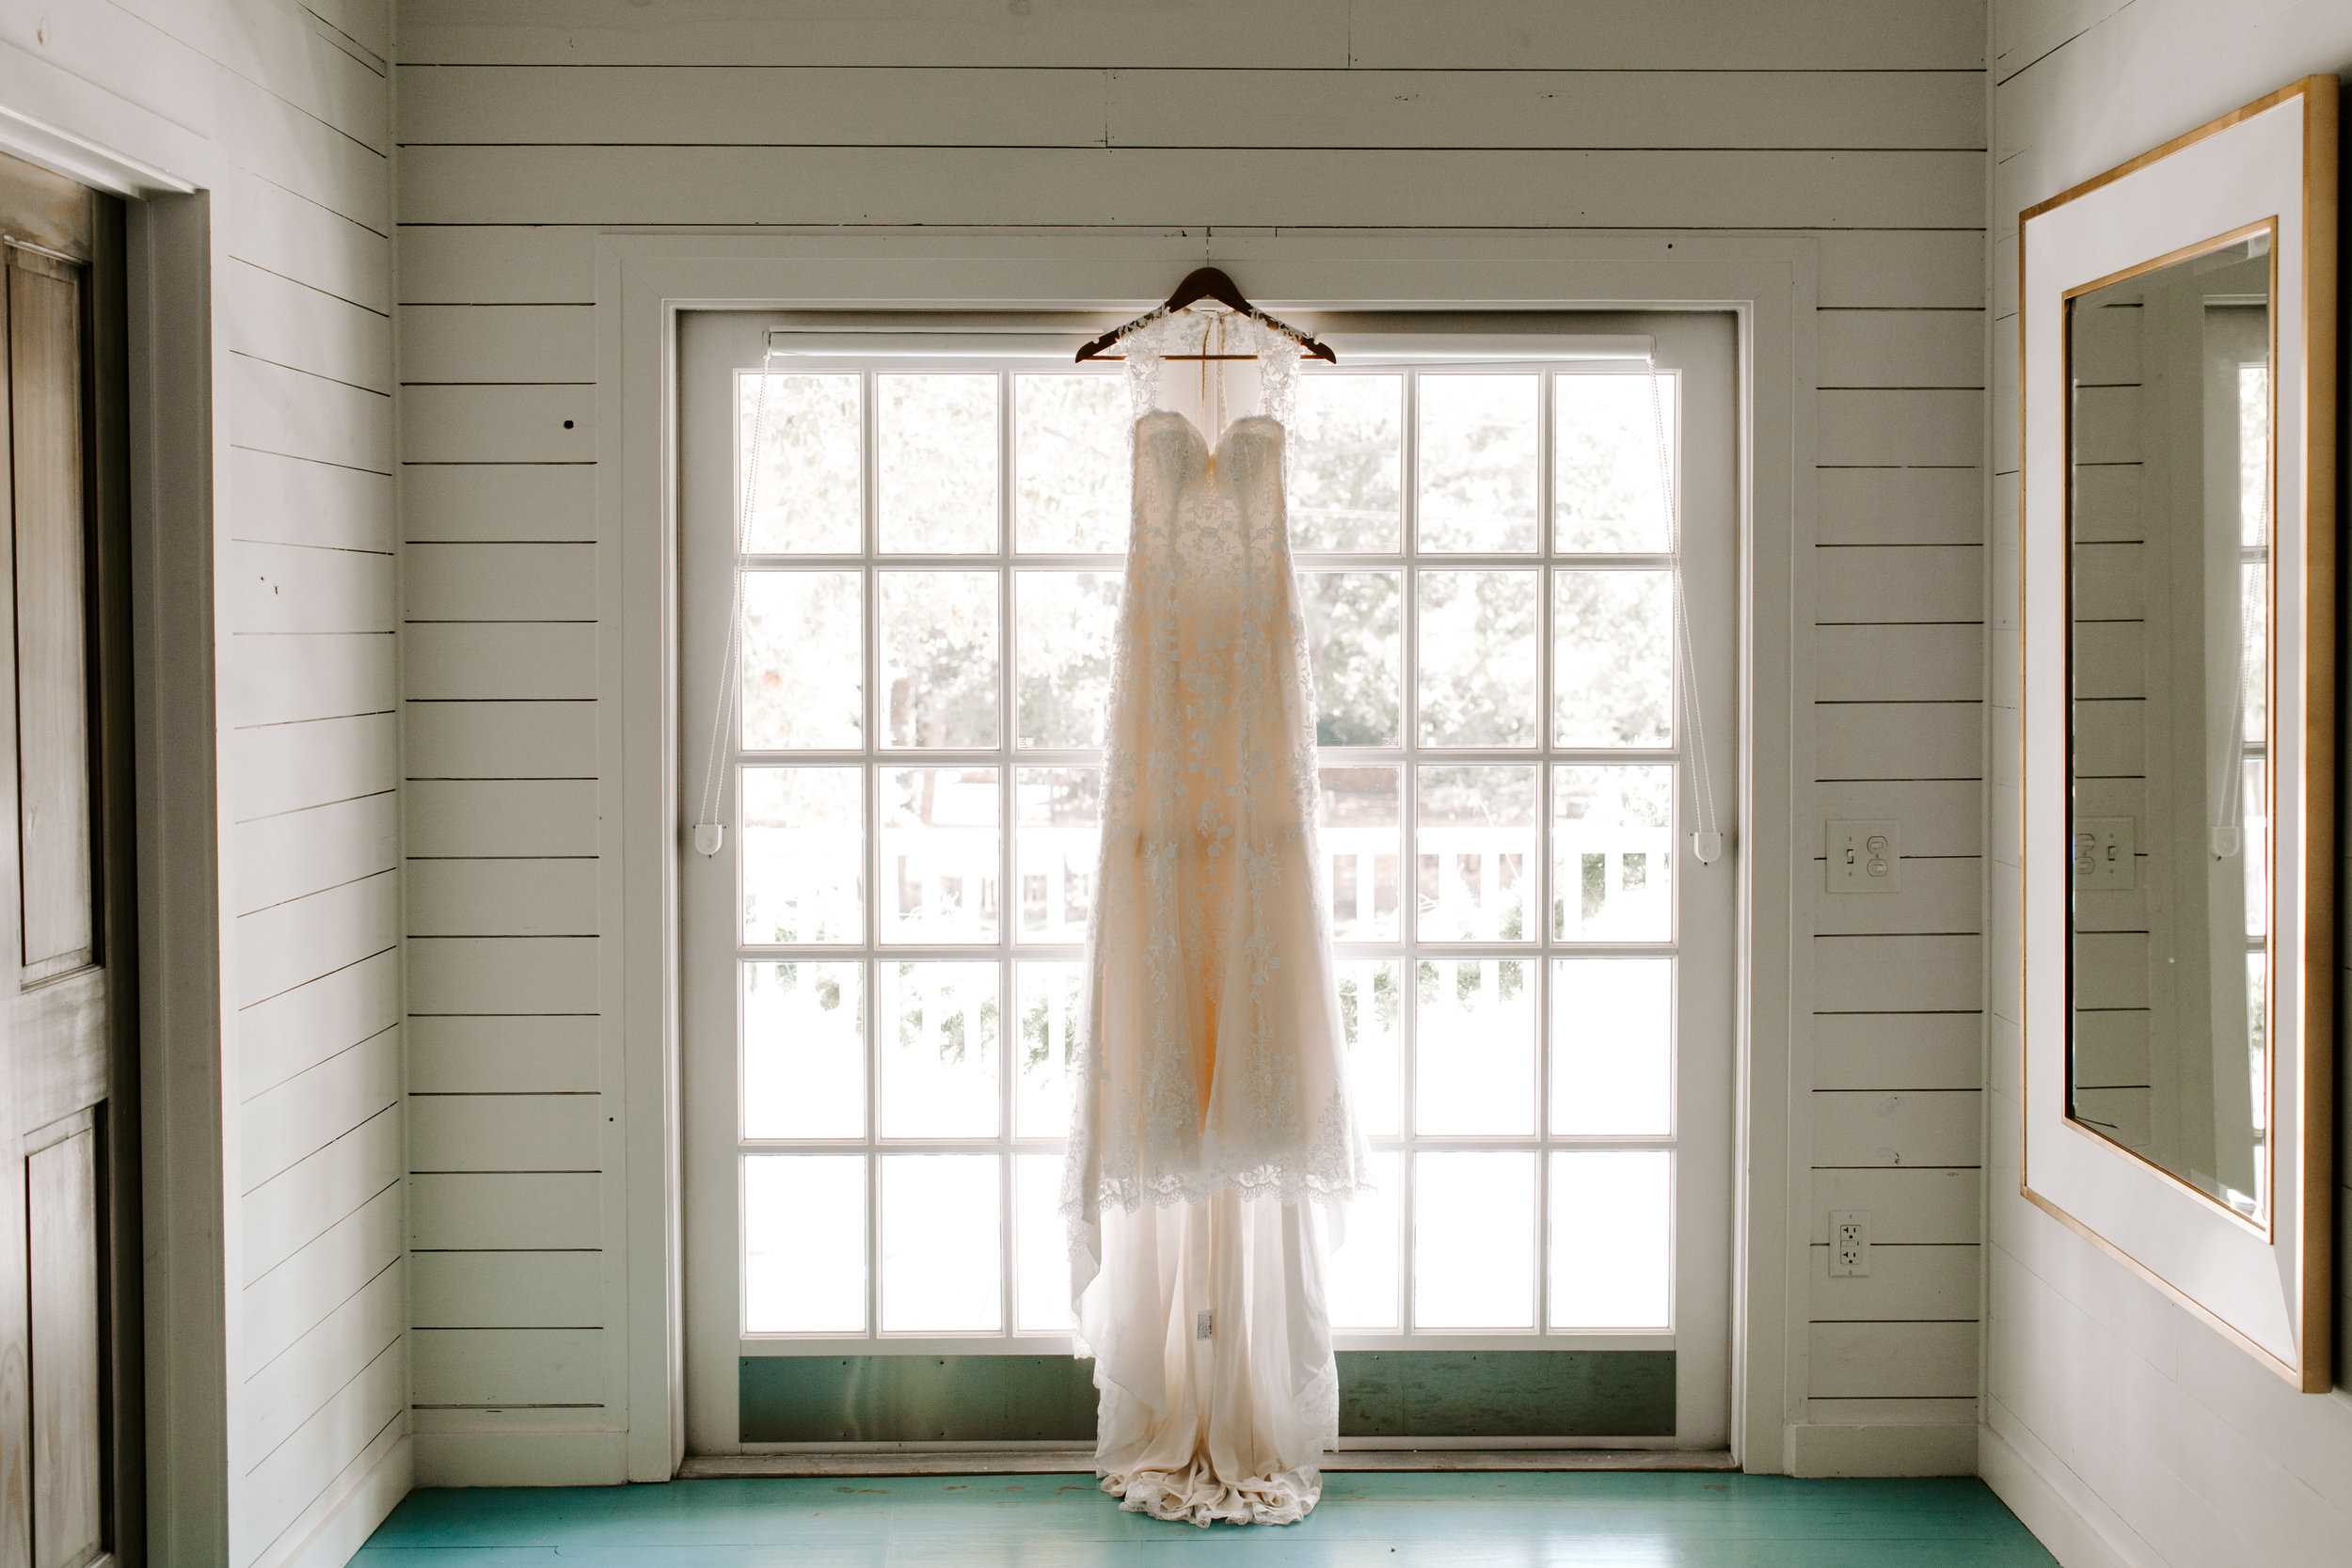 cailin+hails_destination_wedding_fairhope_daphne_mobile_alabama_madisonrylee_0007.jpg